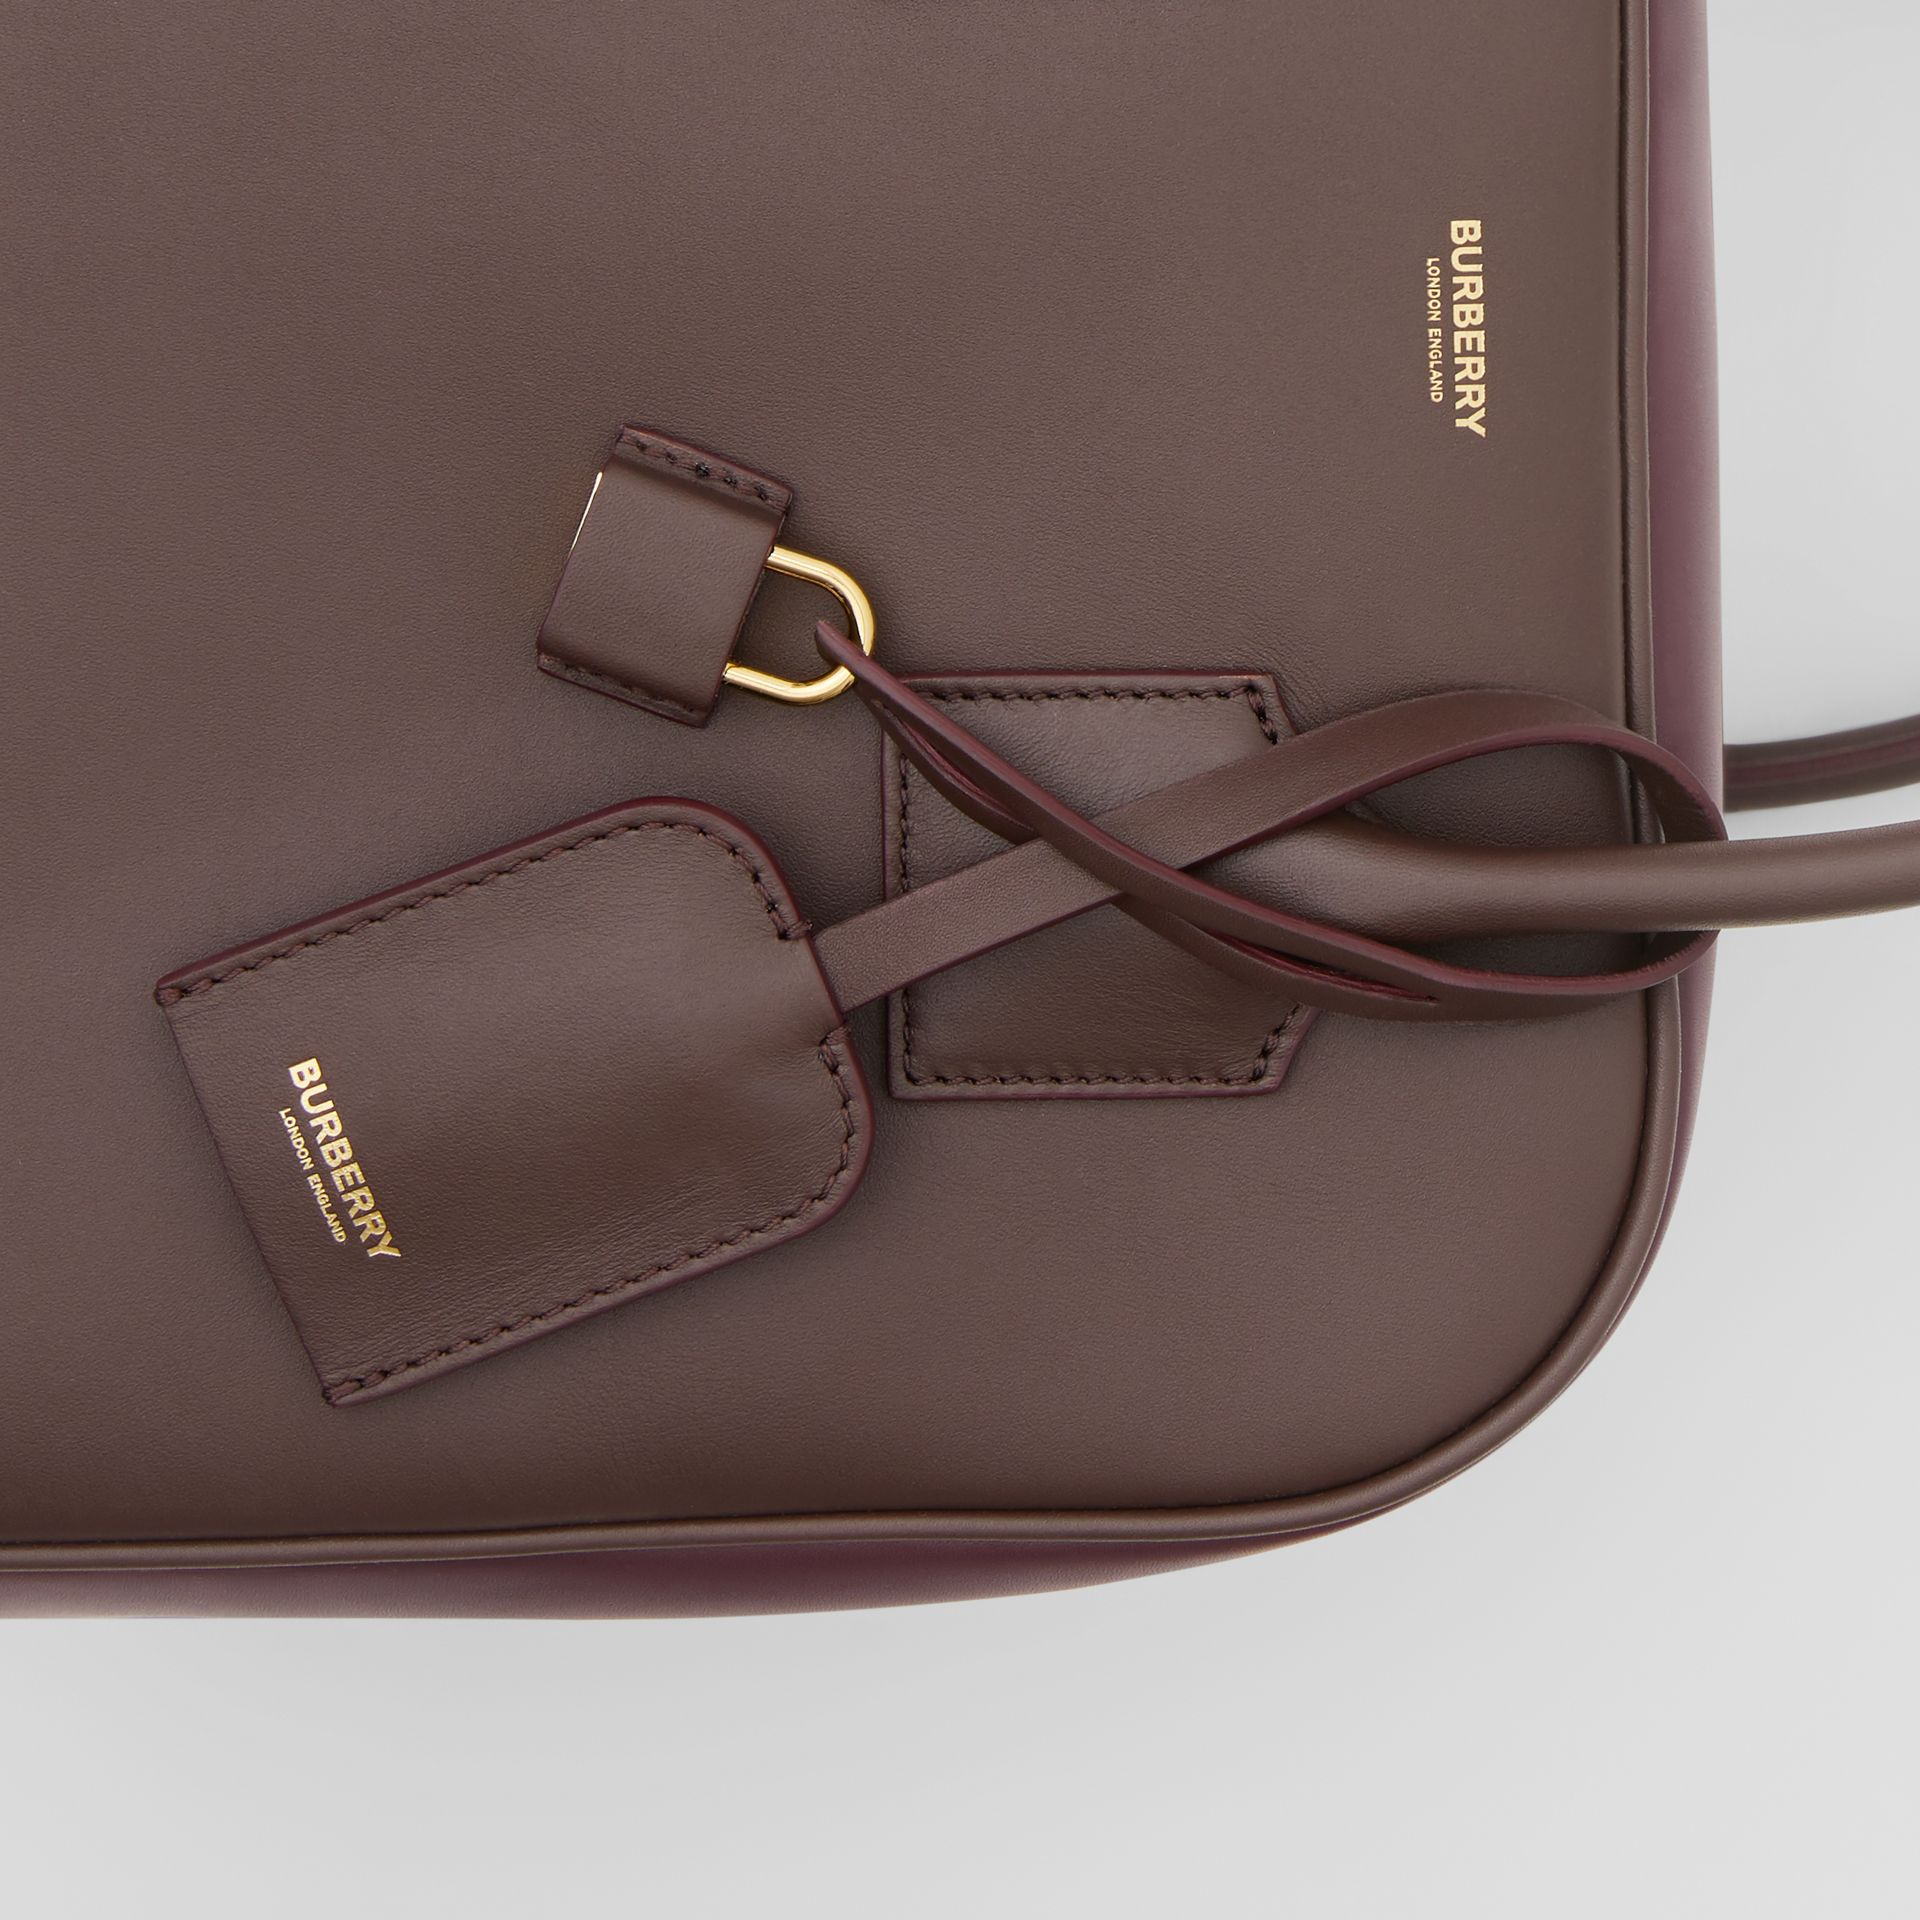 Medium Leather and Suede Cube Bag in Mahogany - Women | Burberry - gallery image 8